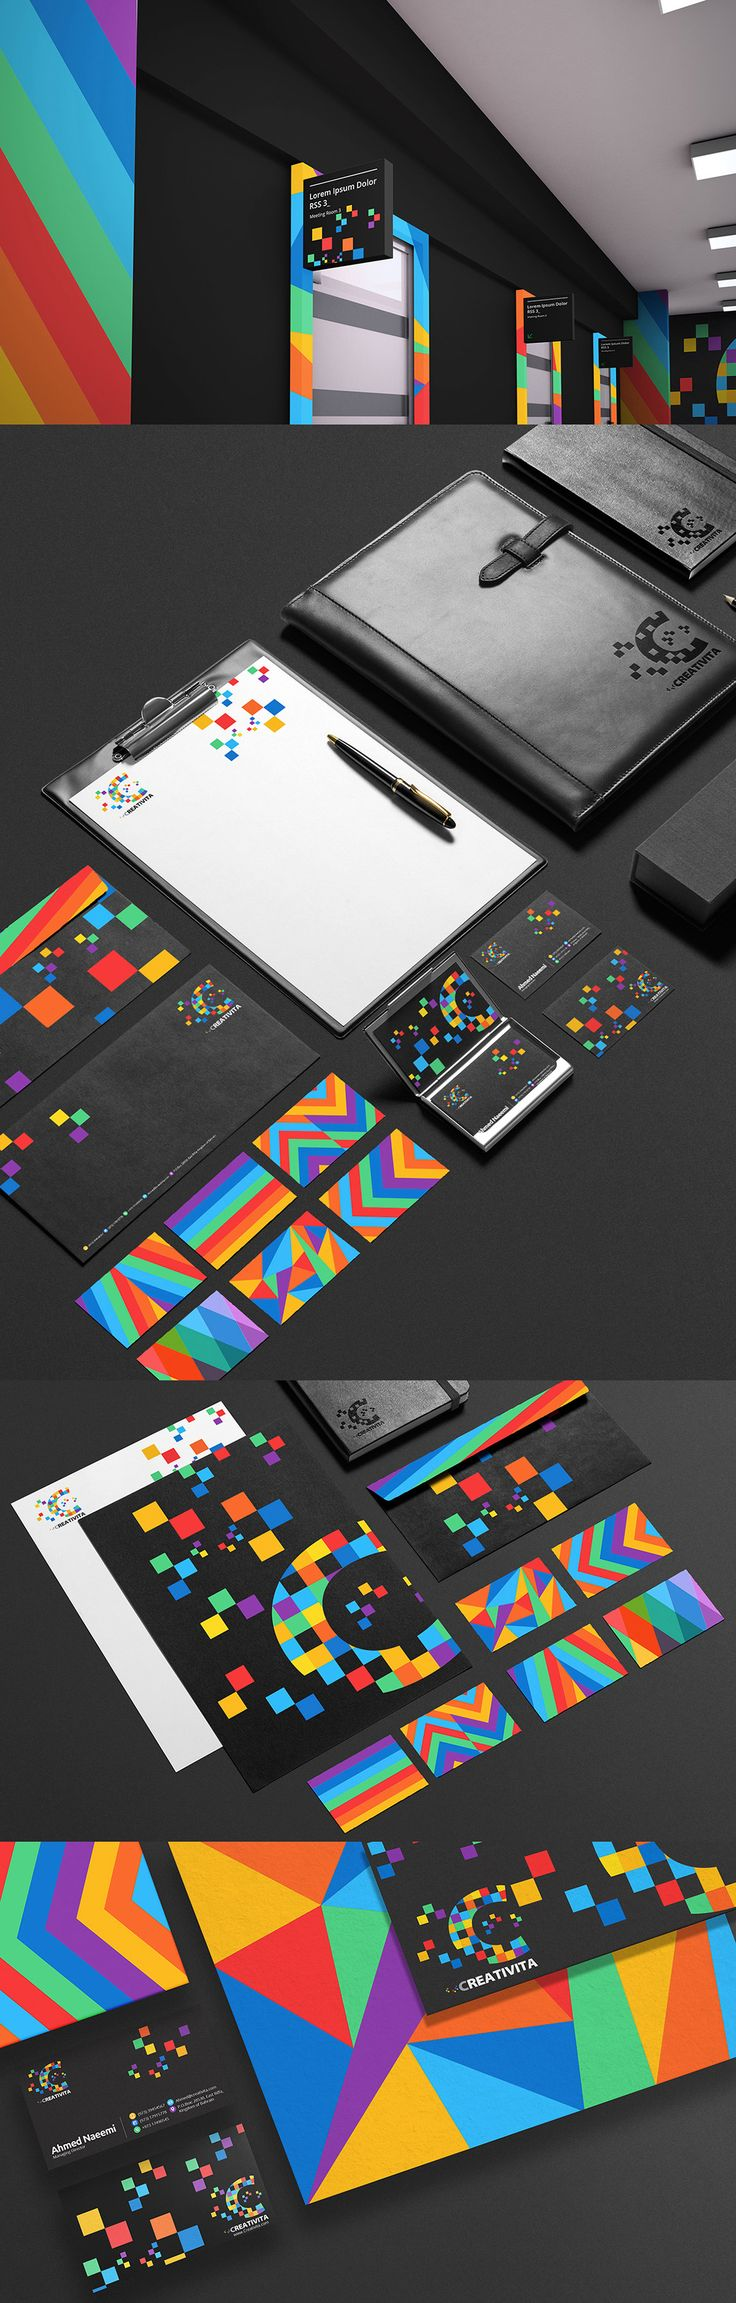 Creativita is a design studio based in the Kingdom of Bahrain. This brand identity was created based on the combination of pixels and mutiple colors.